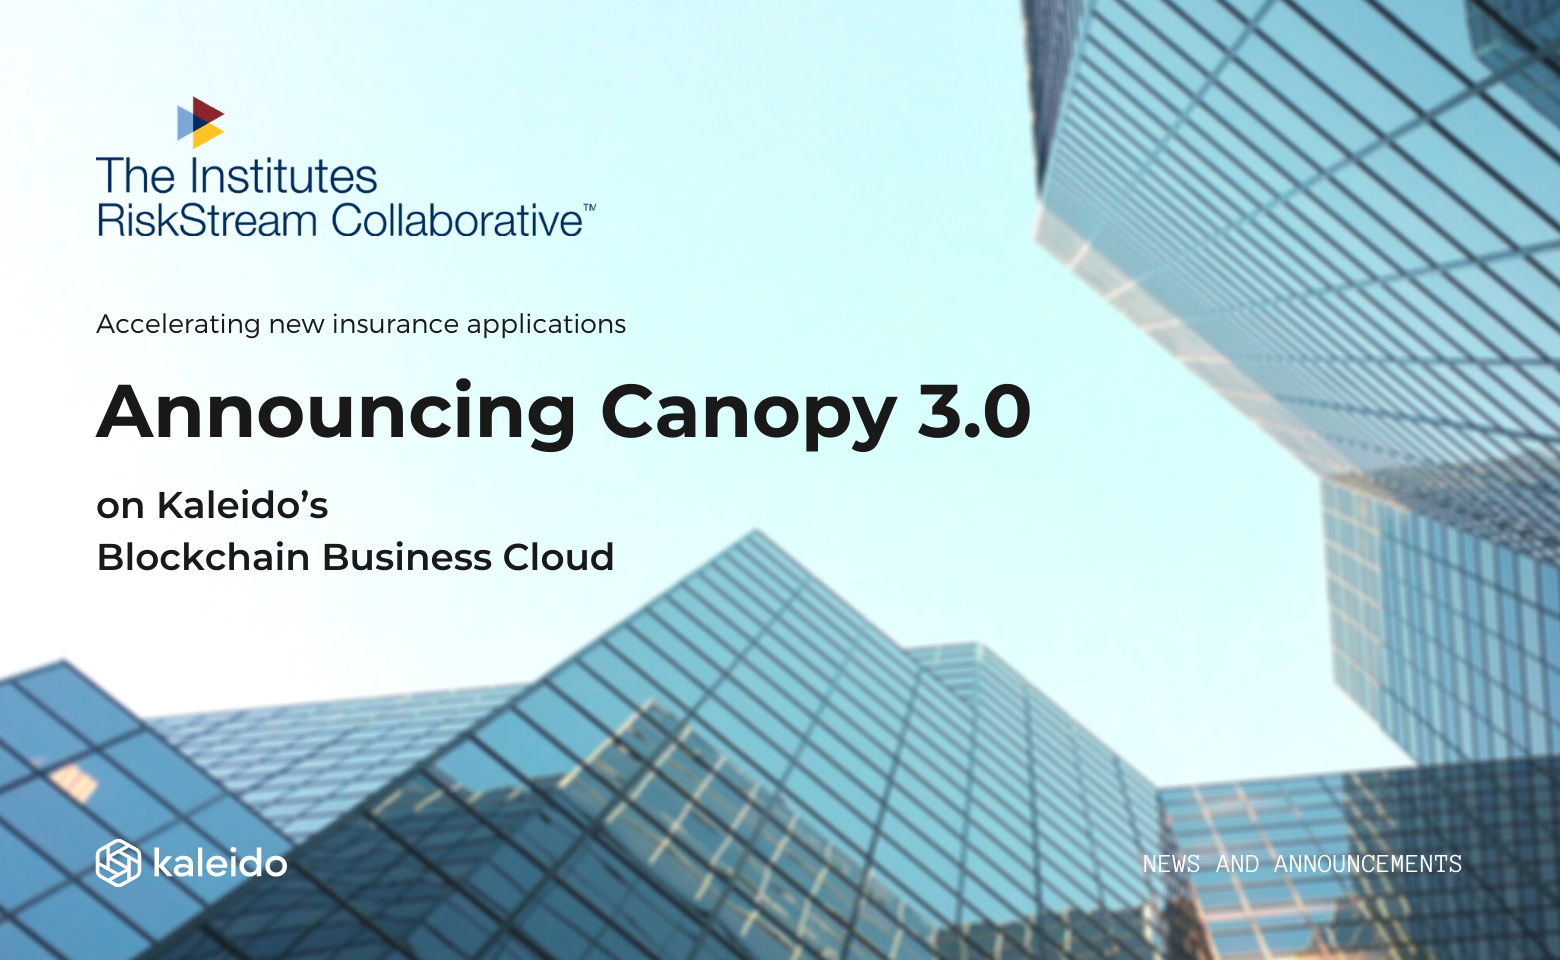 RiskStream Collaborative's Canopy 3.0 on Kaleido